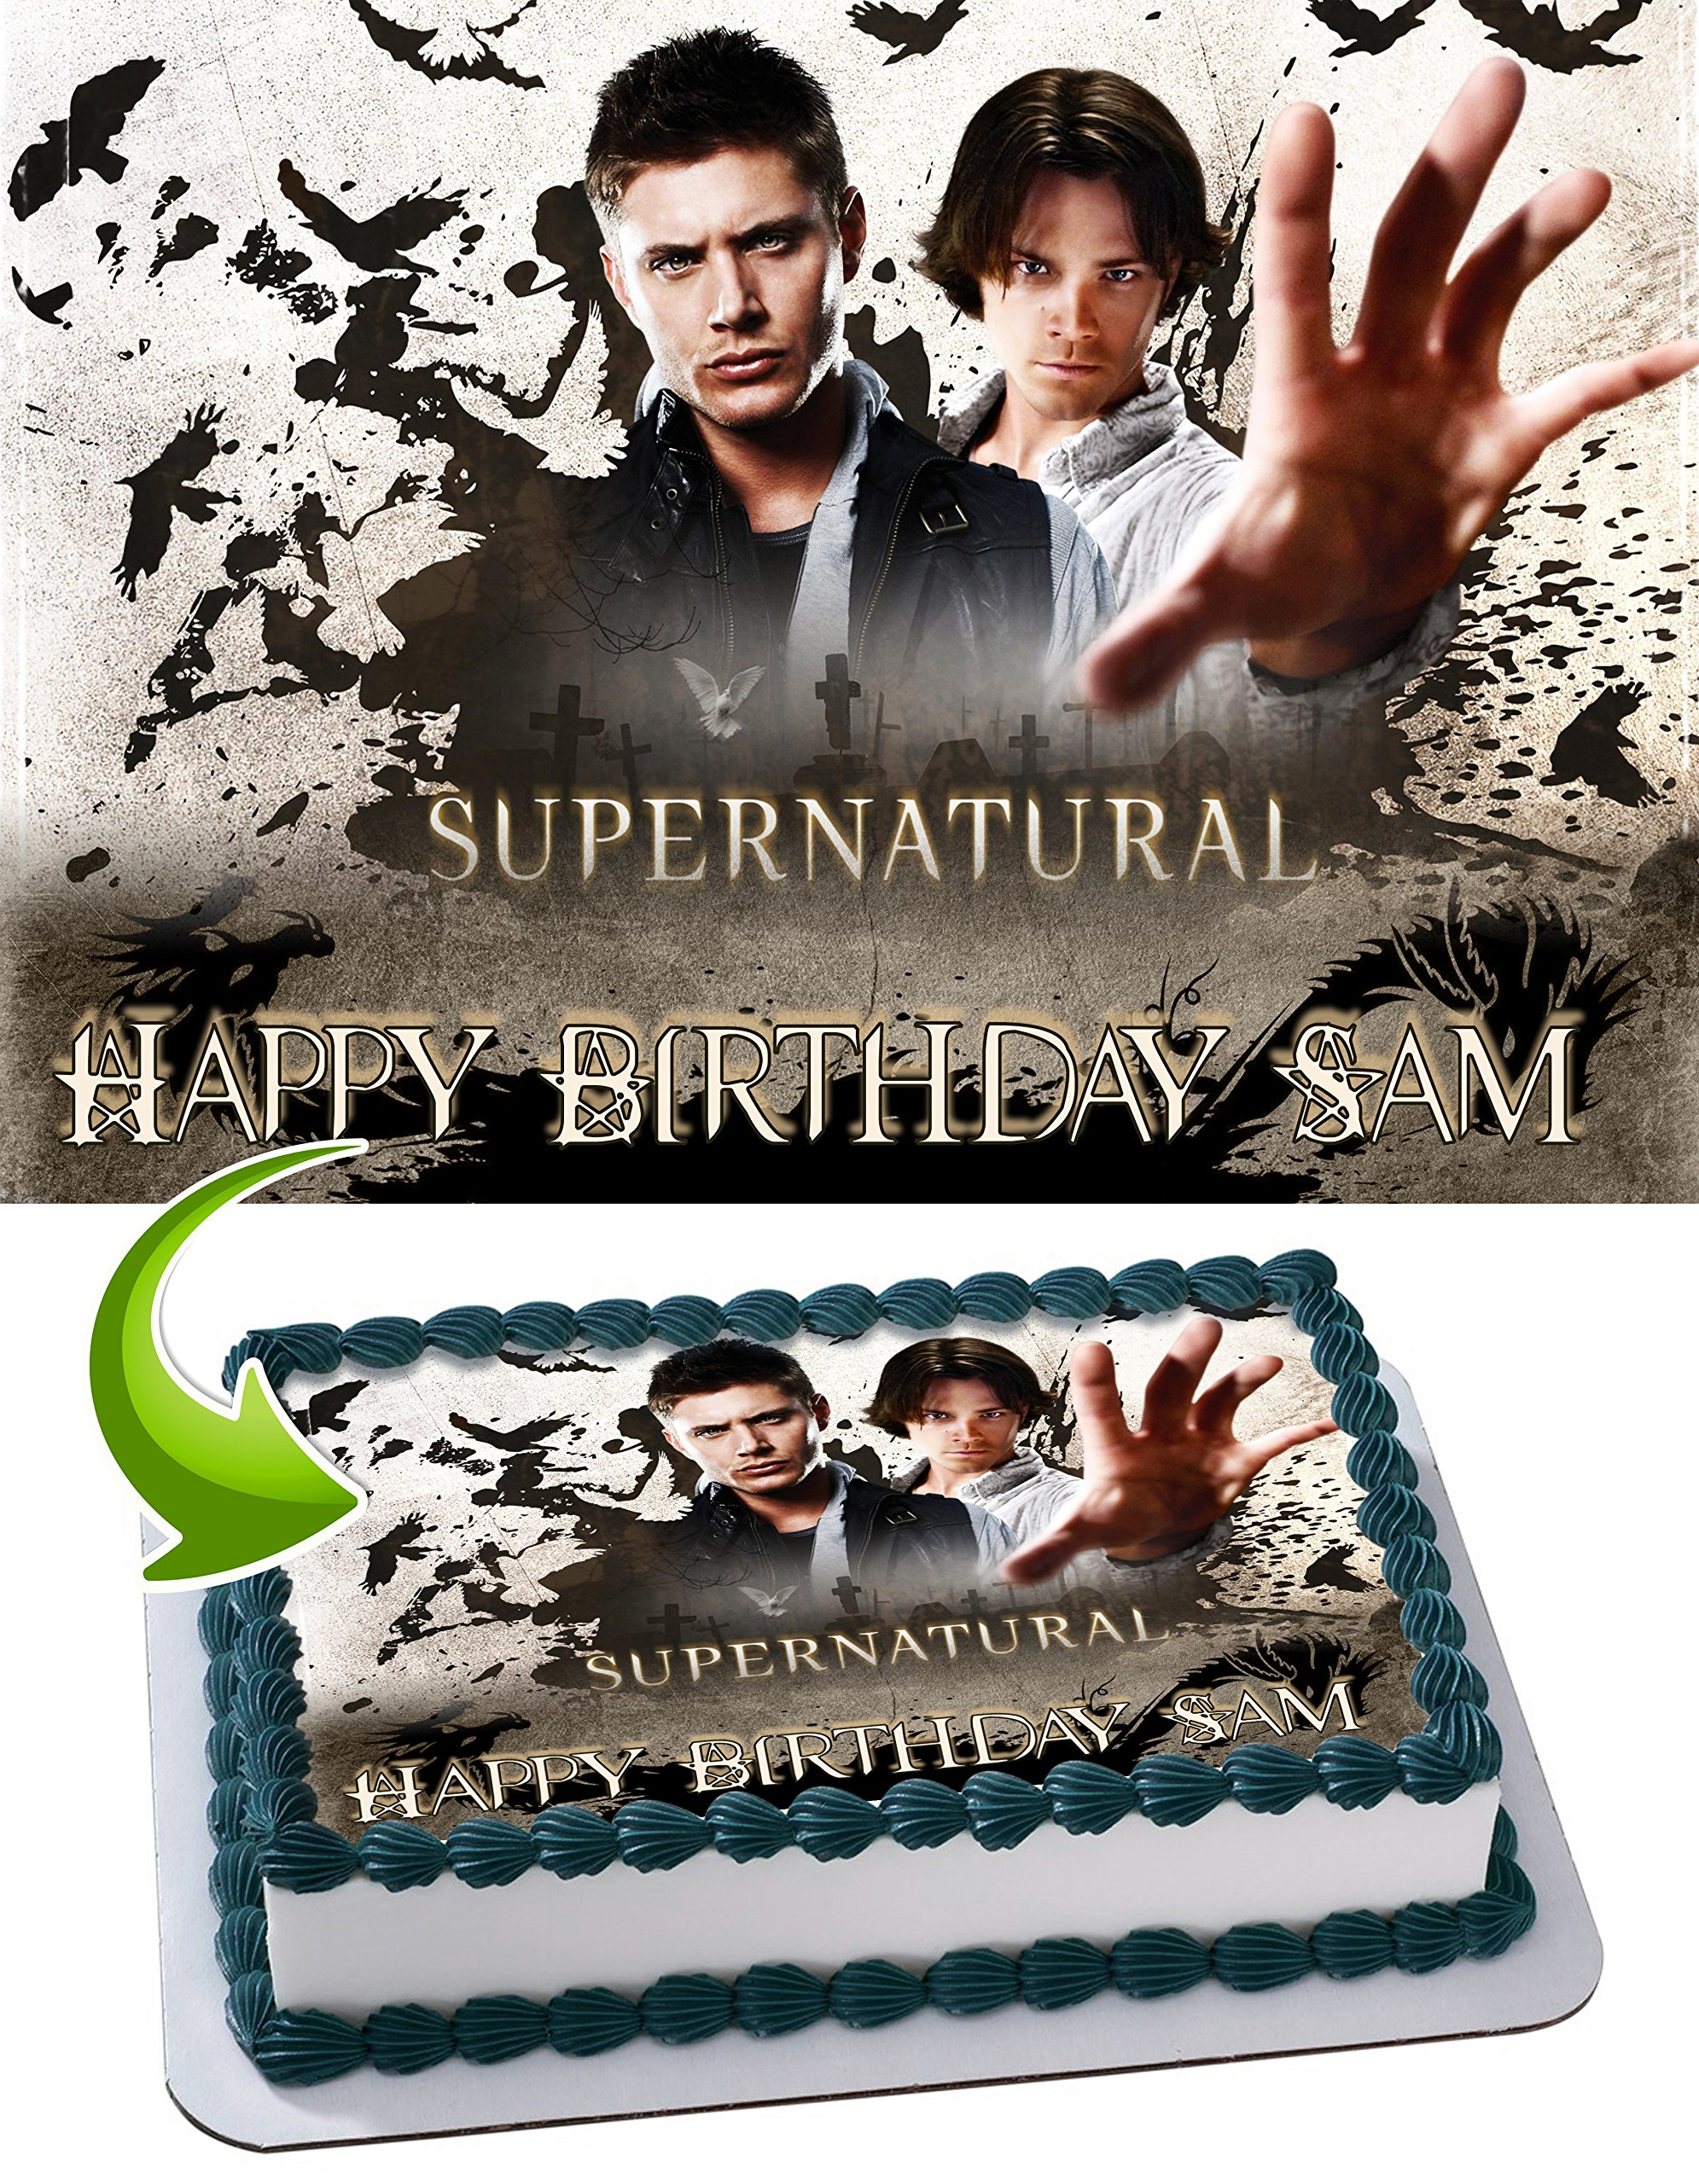 Supernatural Edible Cake Image Personalized Birthday Topper Icing Sugar Paper A4 Sheet 1/4